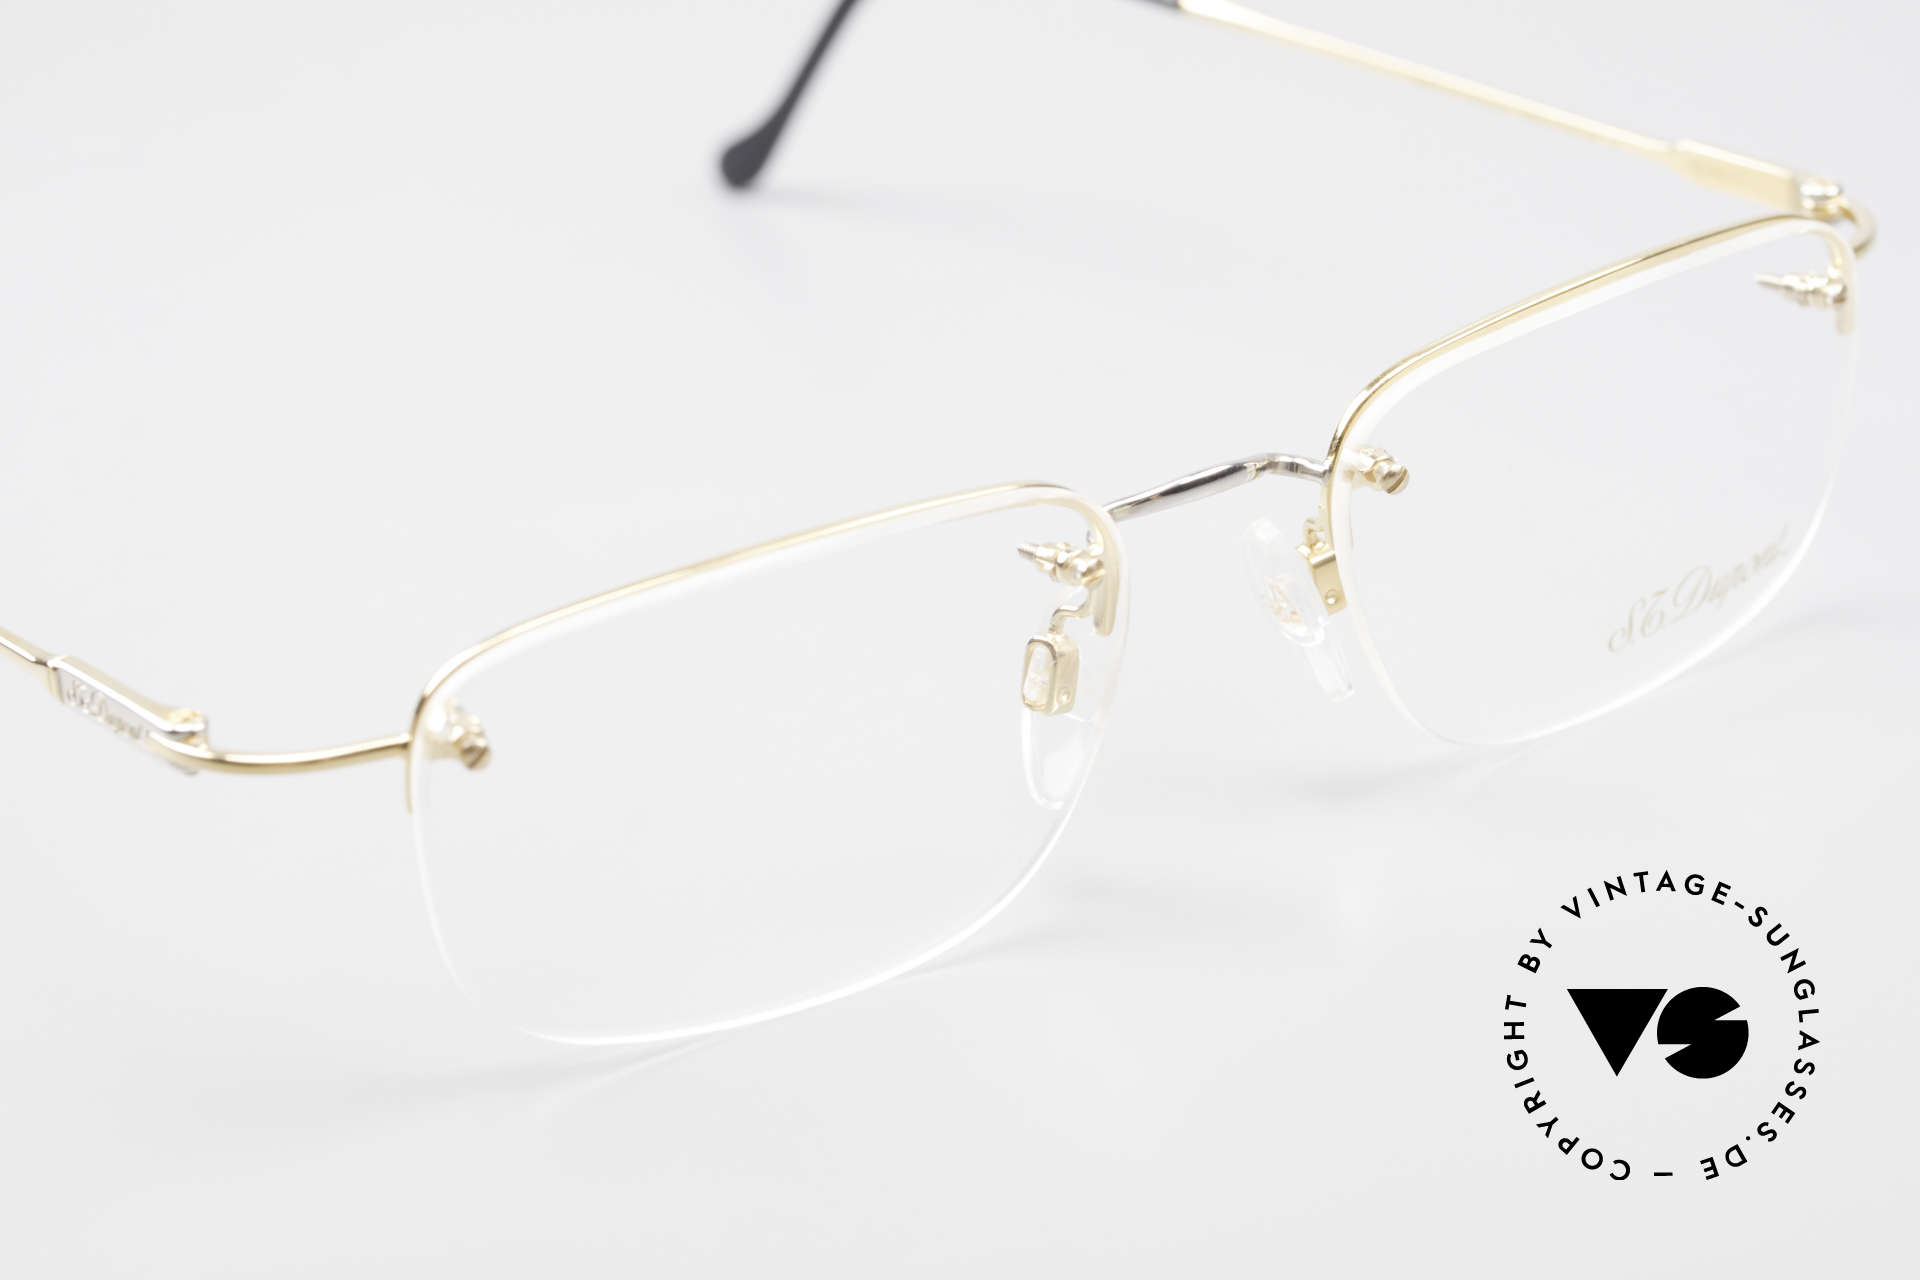 S.T. Dupont D523 Rimless Glasses Avance 2000's, unworn (like all our rare vintage specs by S.T. Dupont), Made for Men and Women